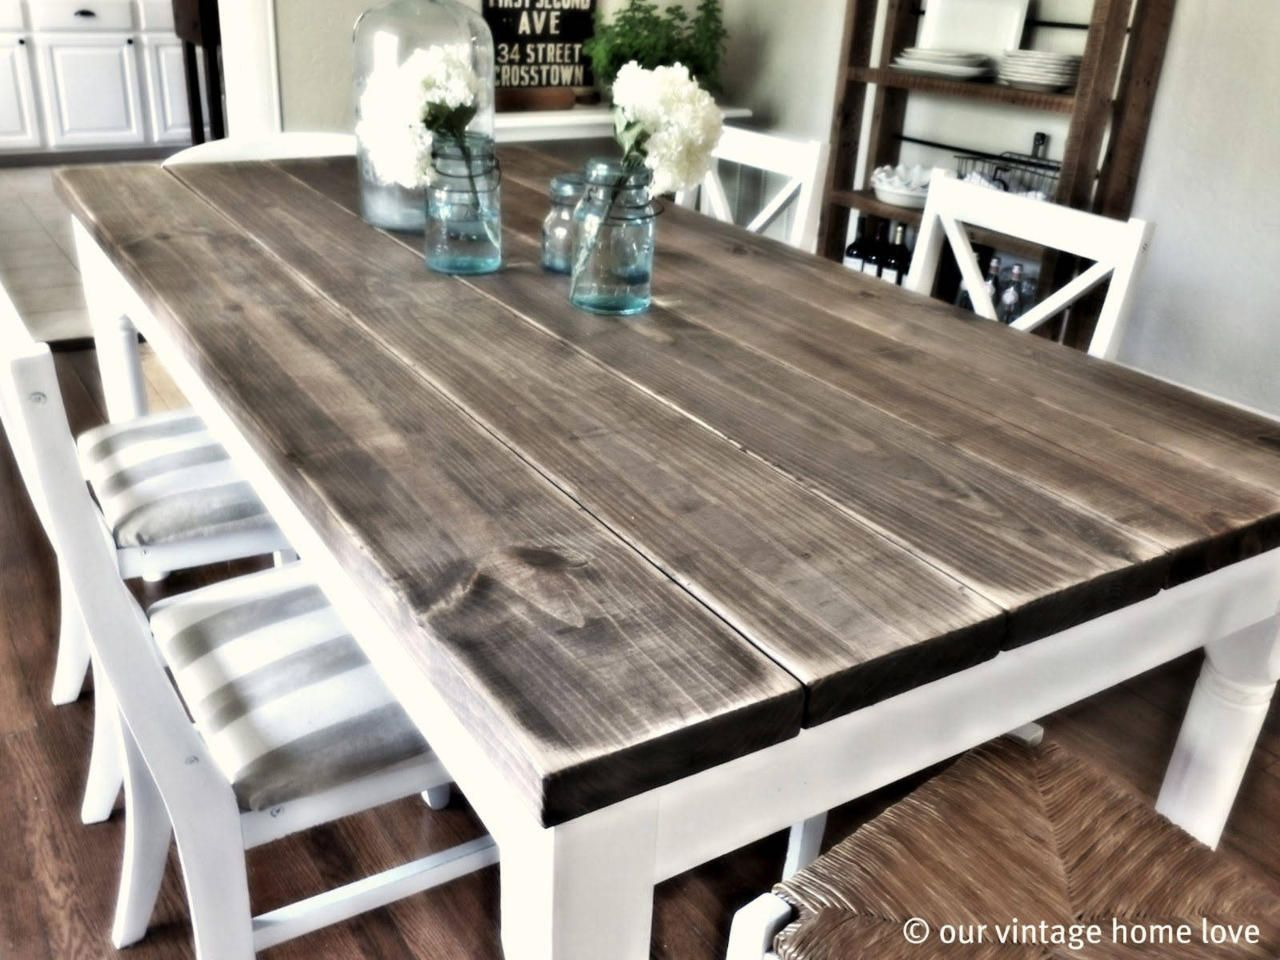 10 Person Dining Table. Visit